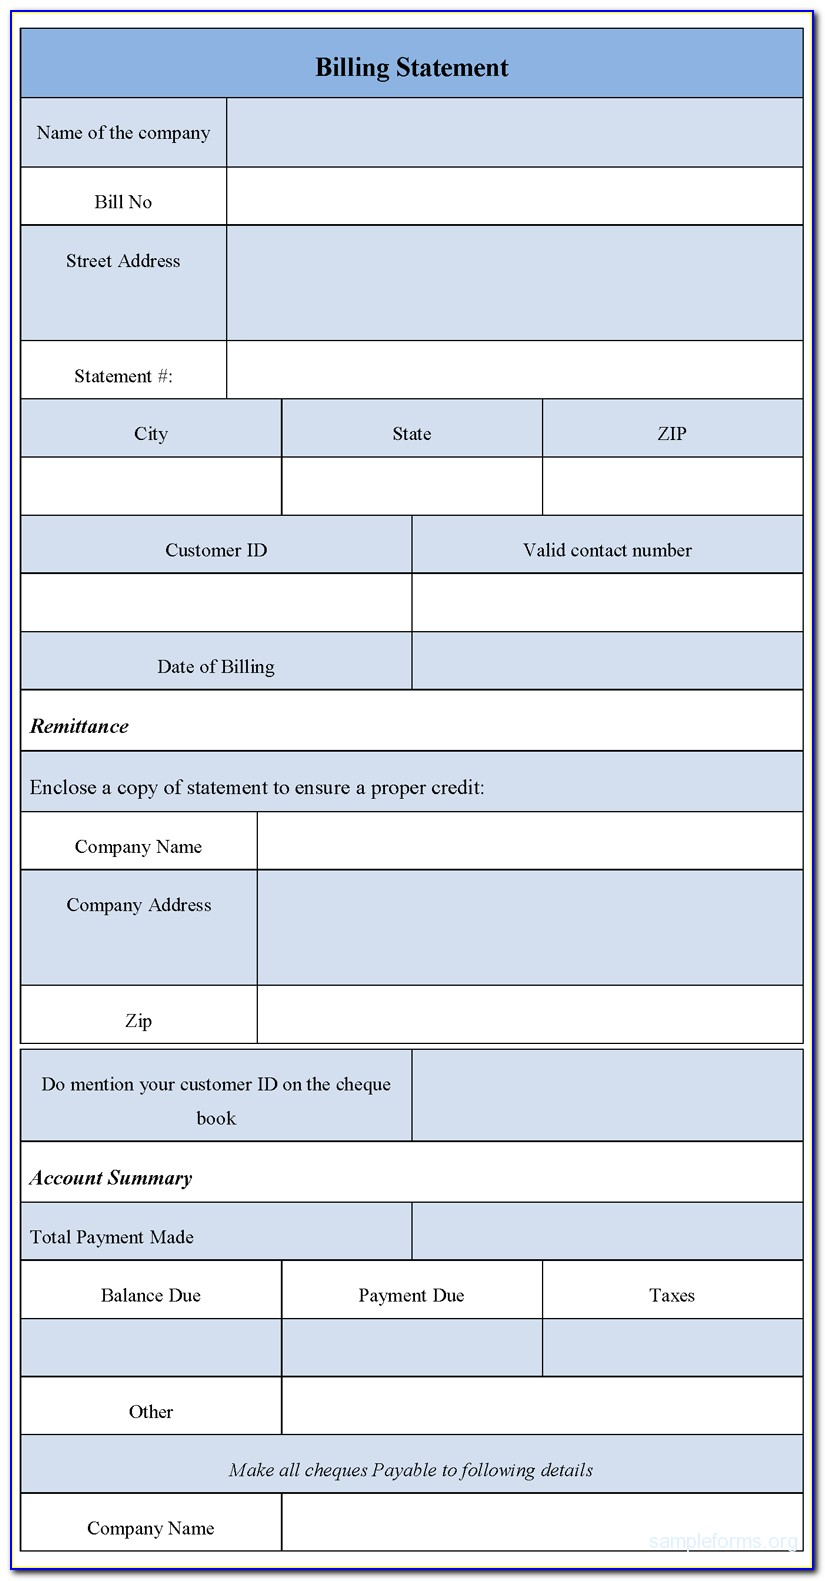 Billing Statement Forms Free Download